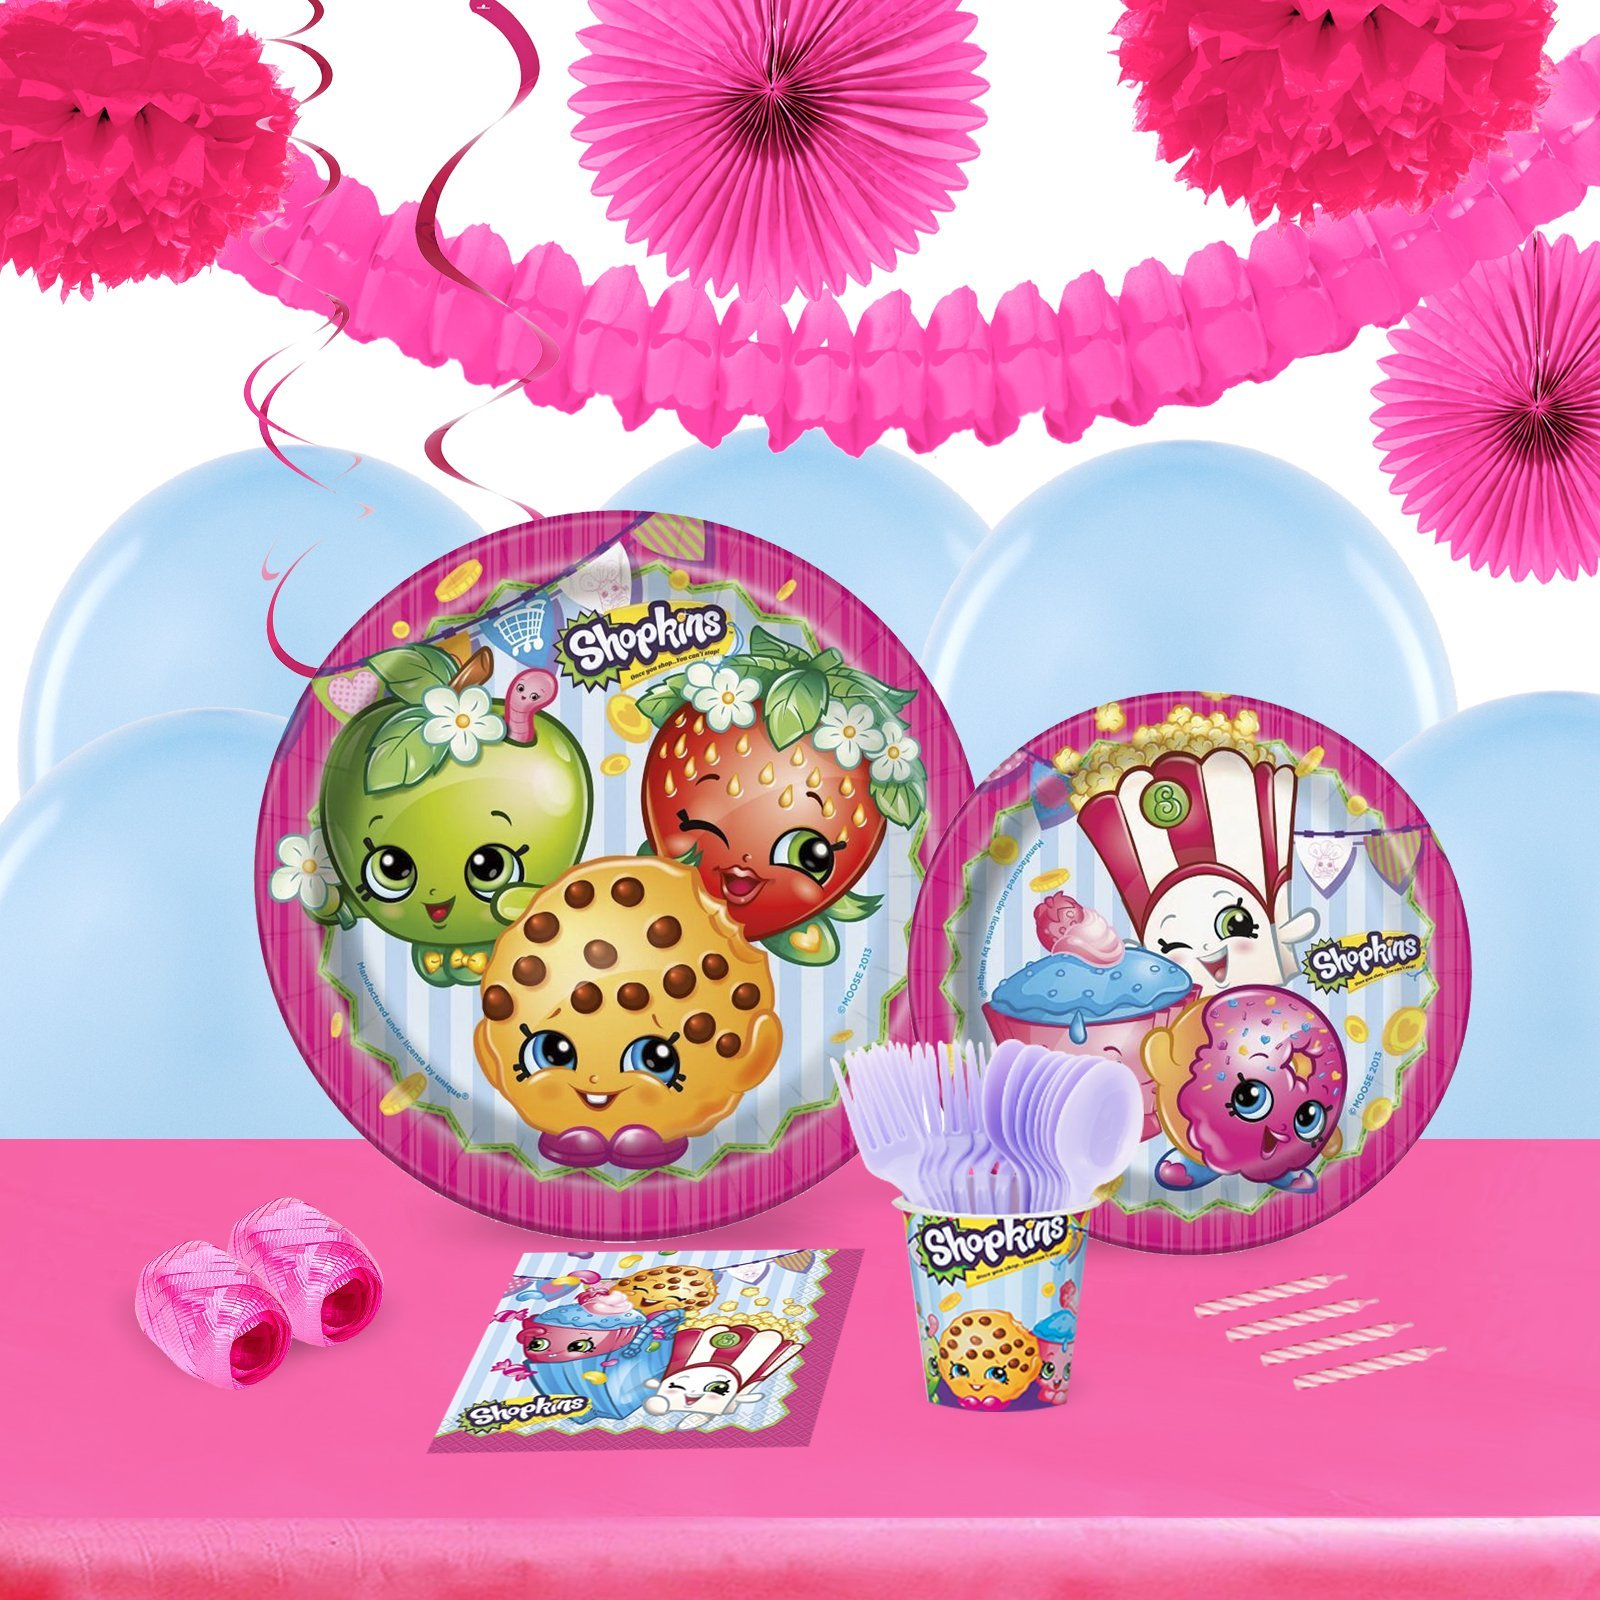 Shopkins Childrens Birthday Party Supplies - Tableware and Decoration Pack (16)